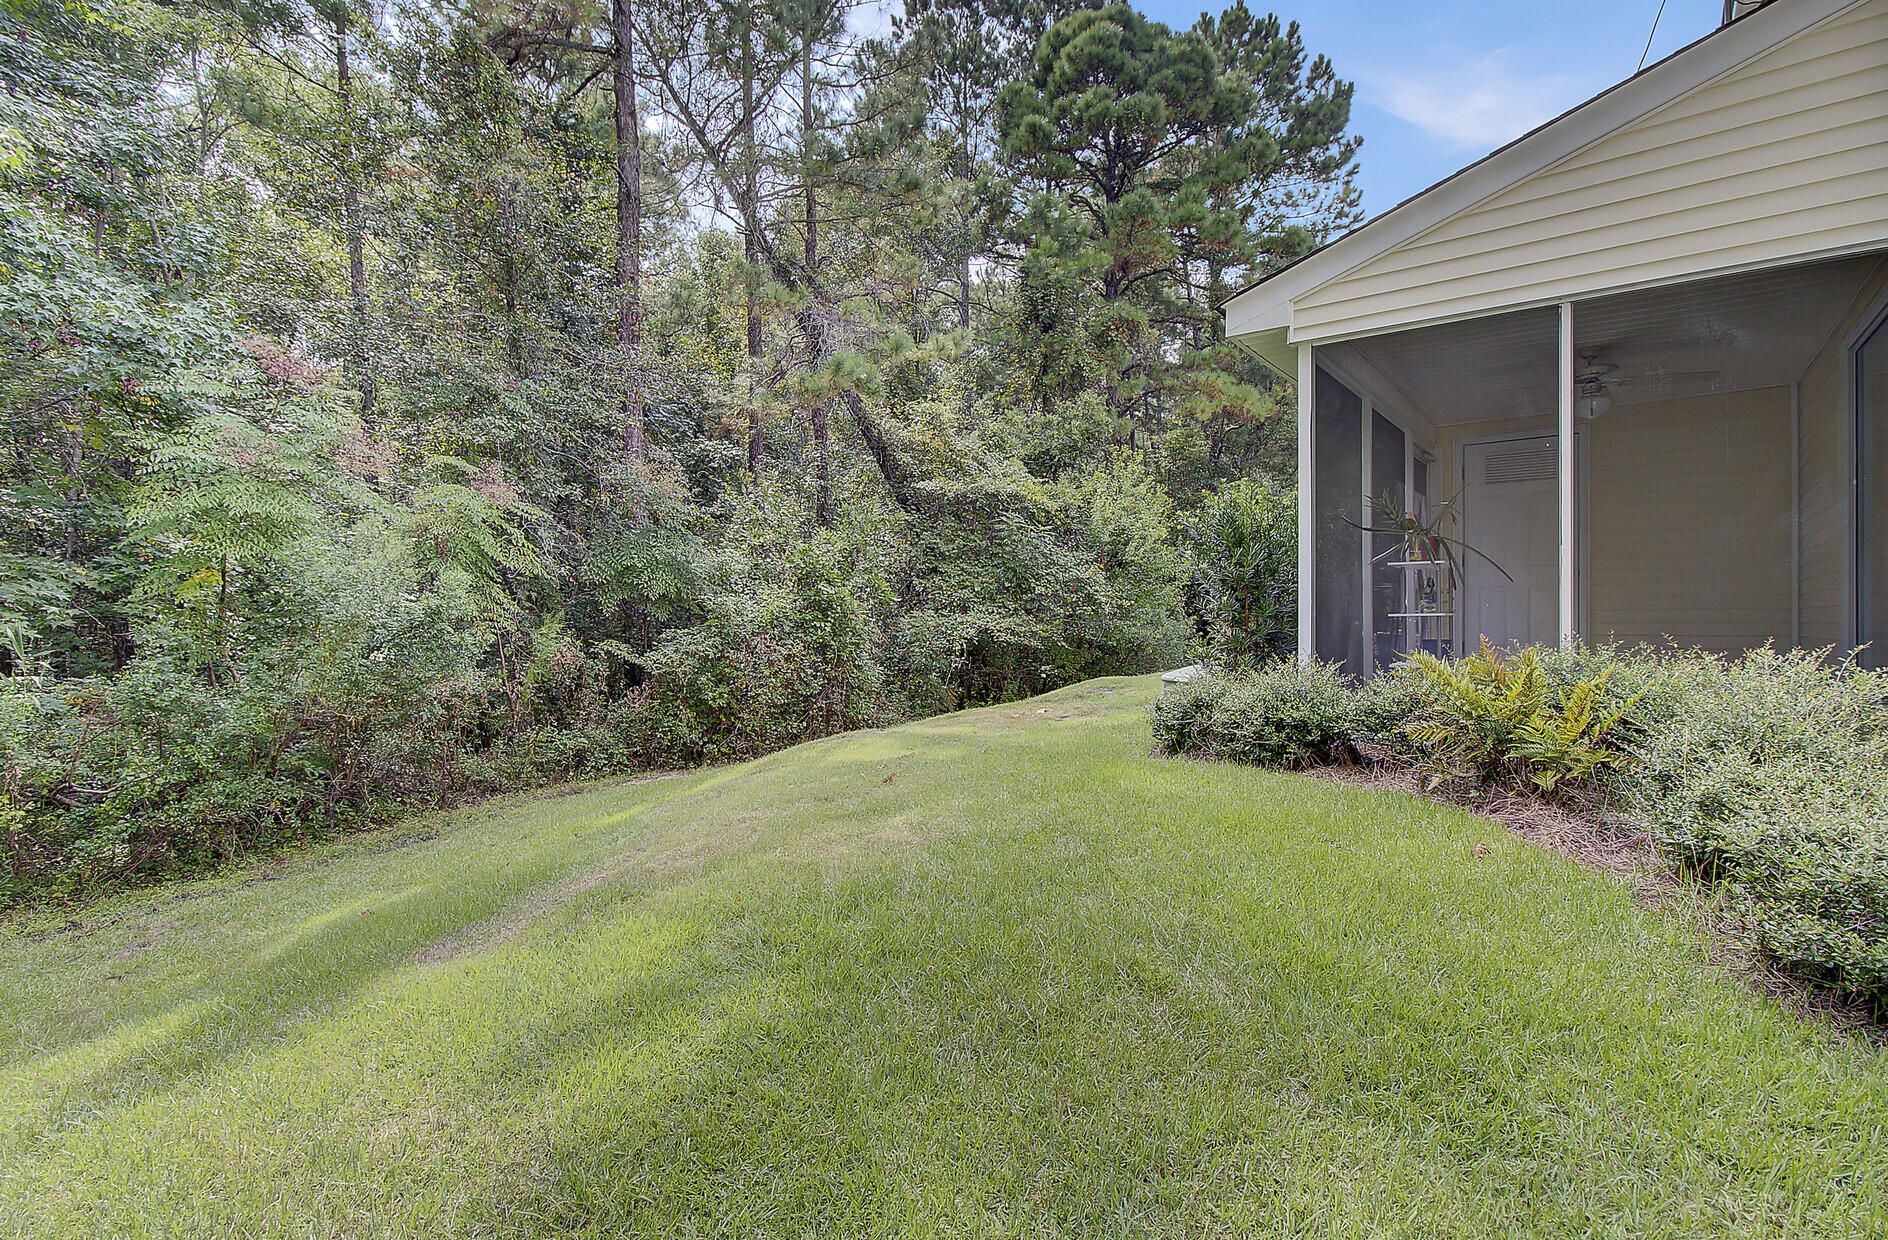 Summer Wood Homes For Sale - 306 Tree Branch, Summerville, SC - 7